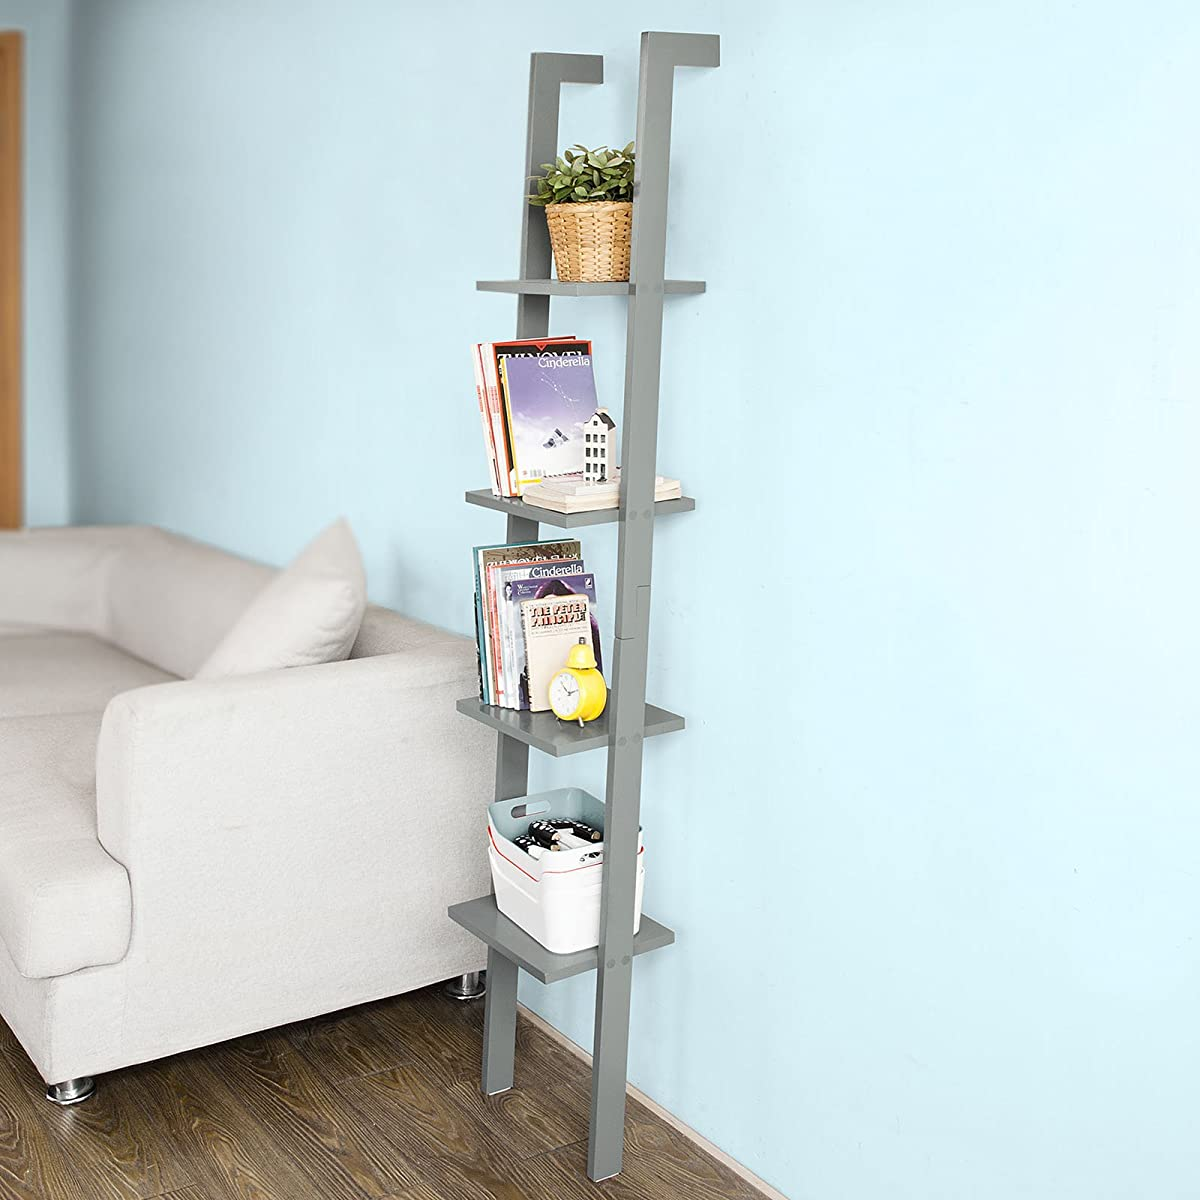 SoBuy Modern ladder bookcase made of wood with four floors,book shelf, stand shelf, wall shelf, 12.99inch x 70.87inch, FRG15-HG